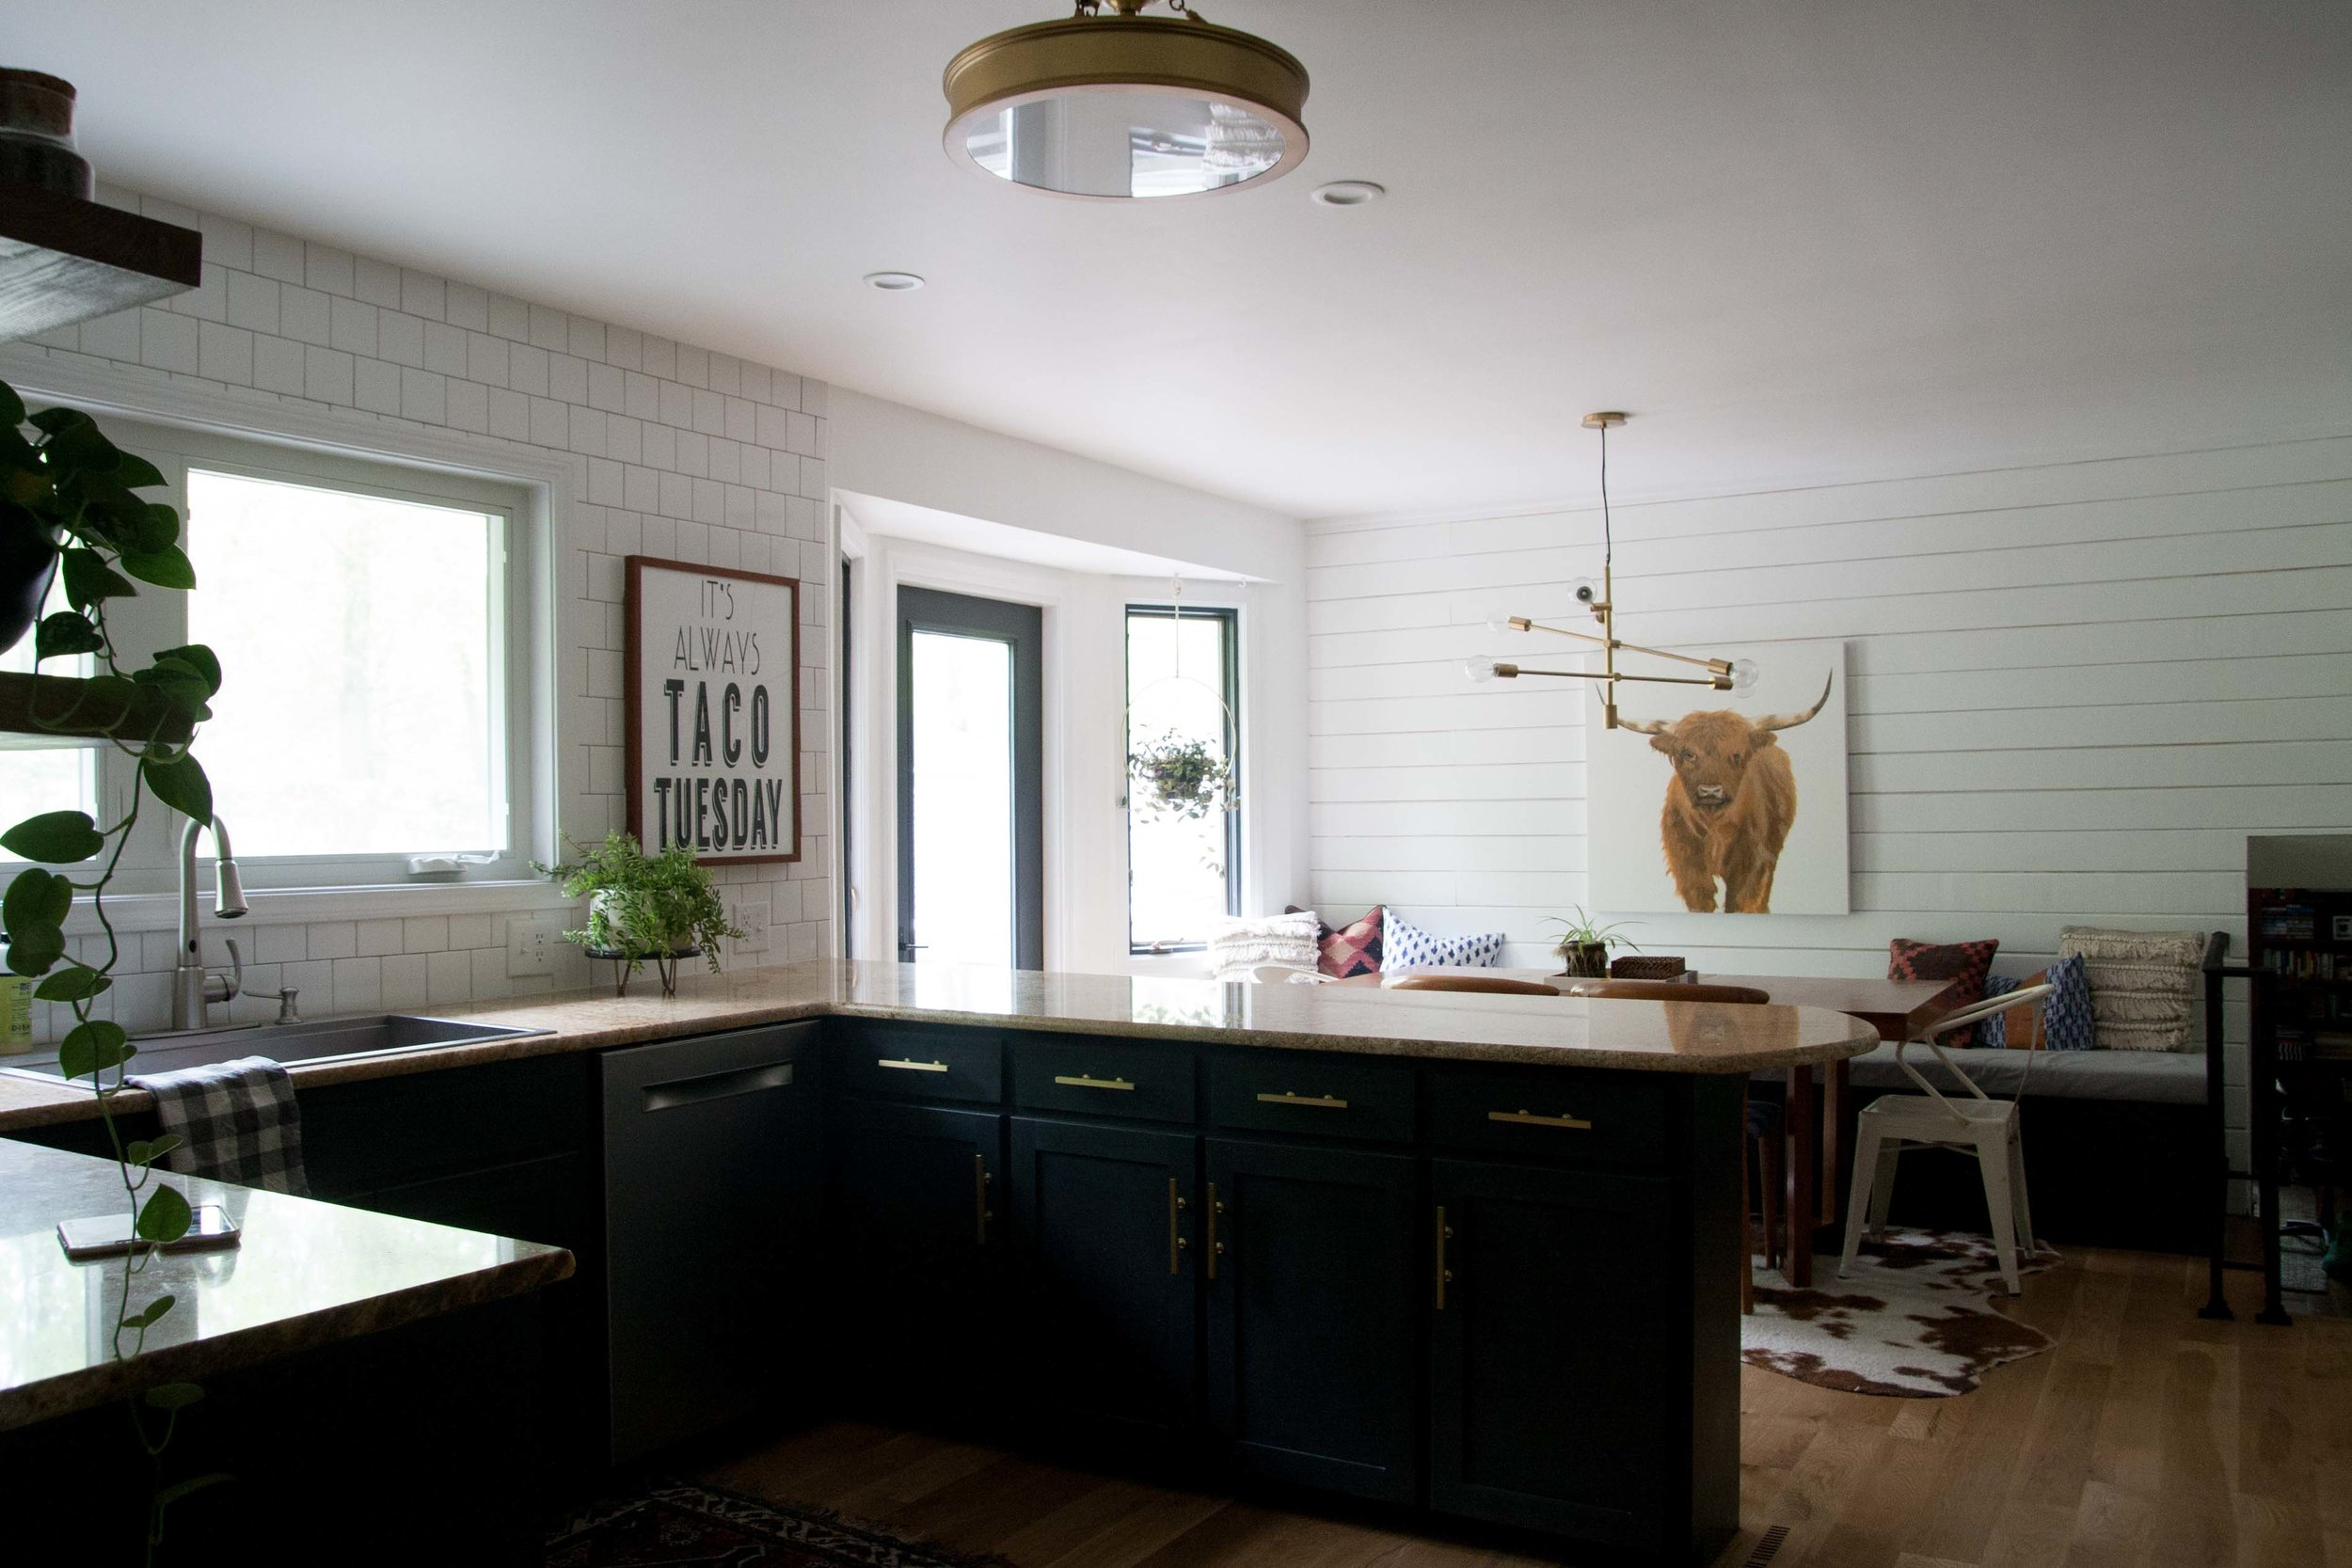 Bigger_than_the_three_of_us_home_tour_kitchen